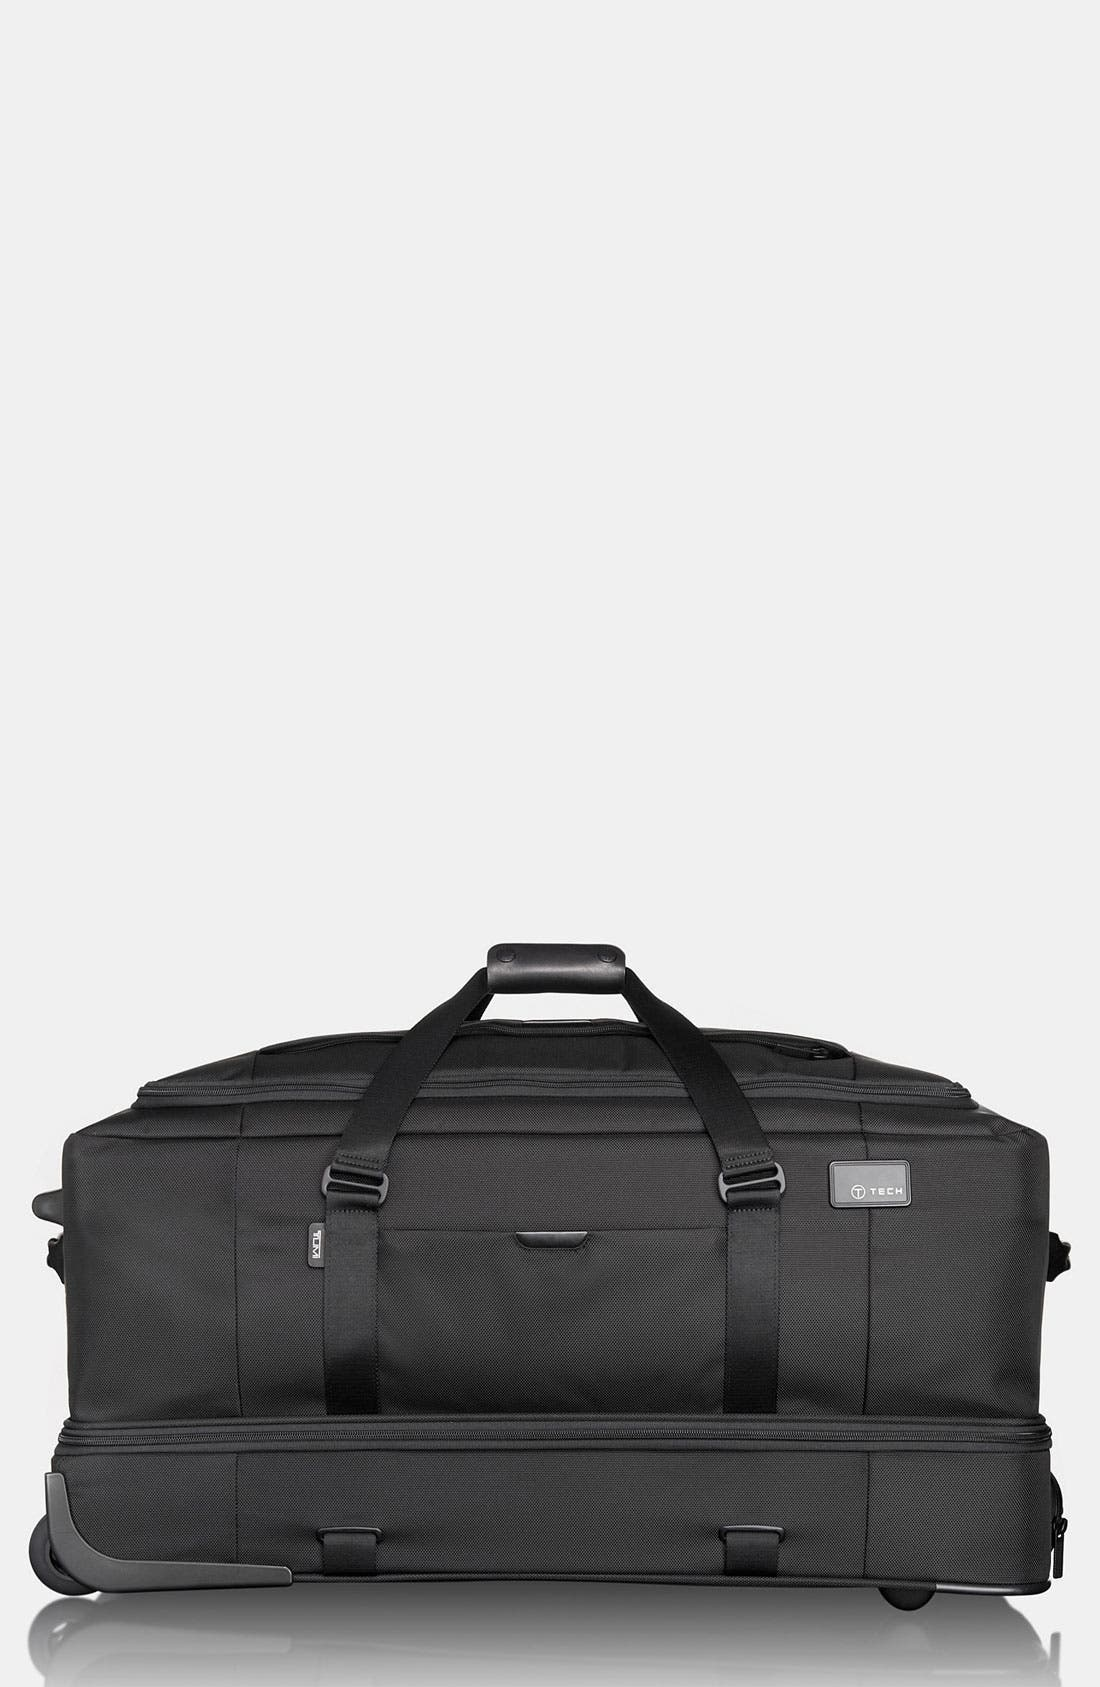 Main Image - Tumi 'T-Tech Network' Wheeled Split Duffel Bag